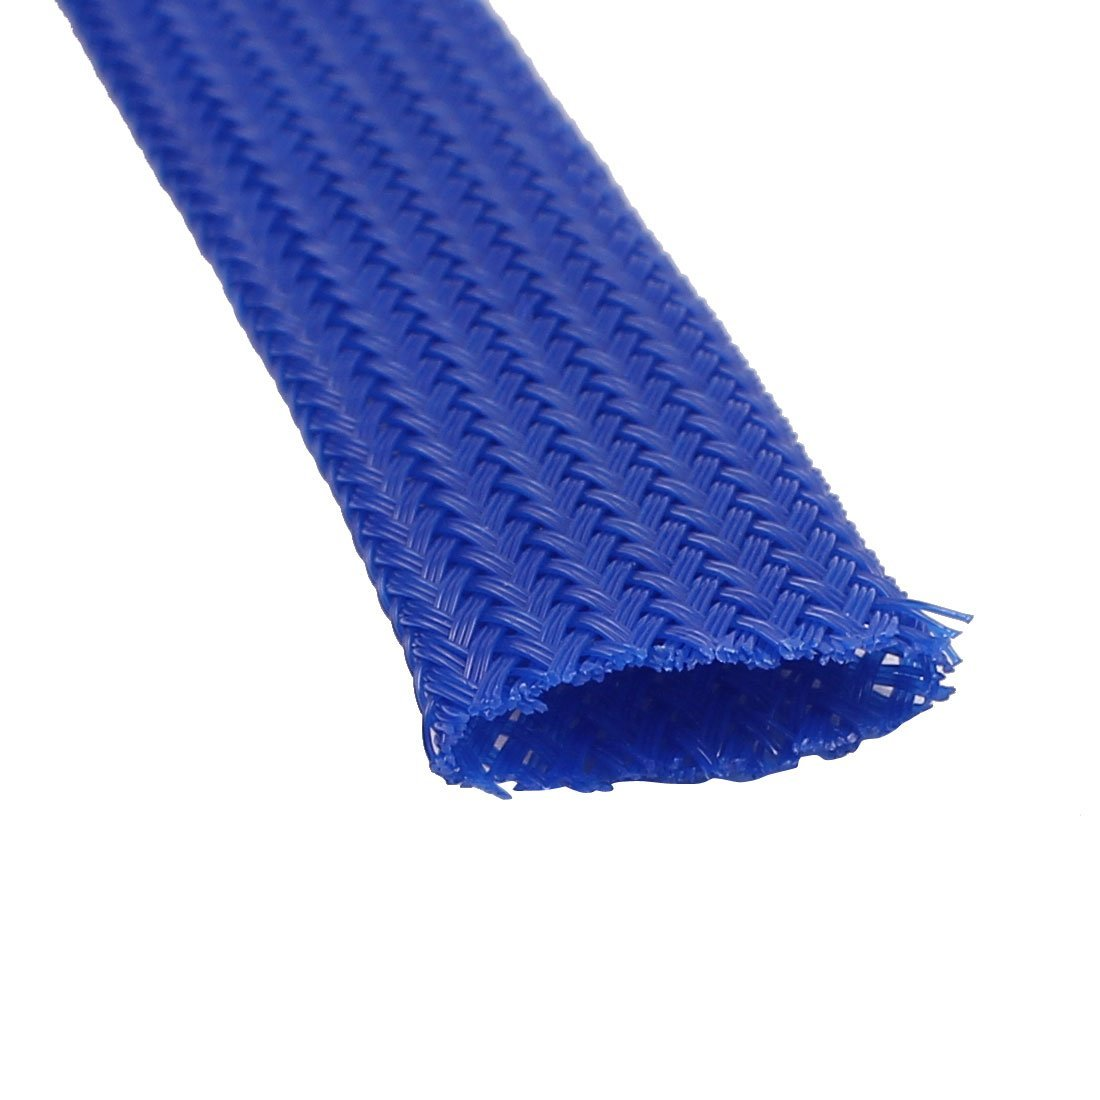 DealMux 12mm Dia Tight Braided PET Expandable Sleeving Cable Wrap Sheath RoyalBlue 10M Length